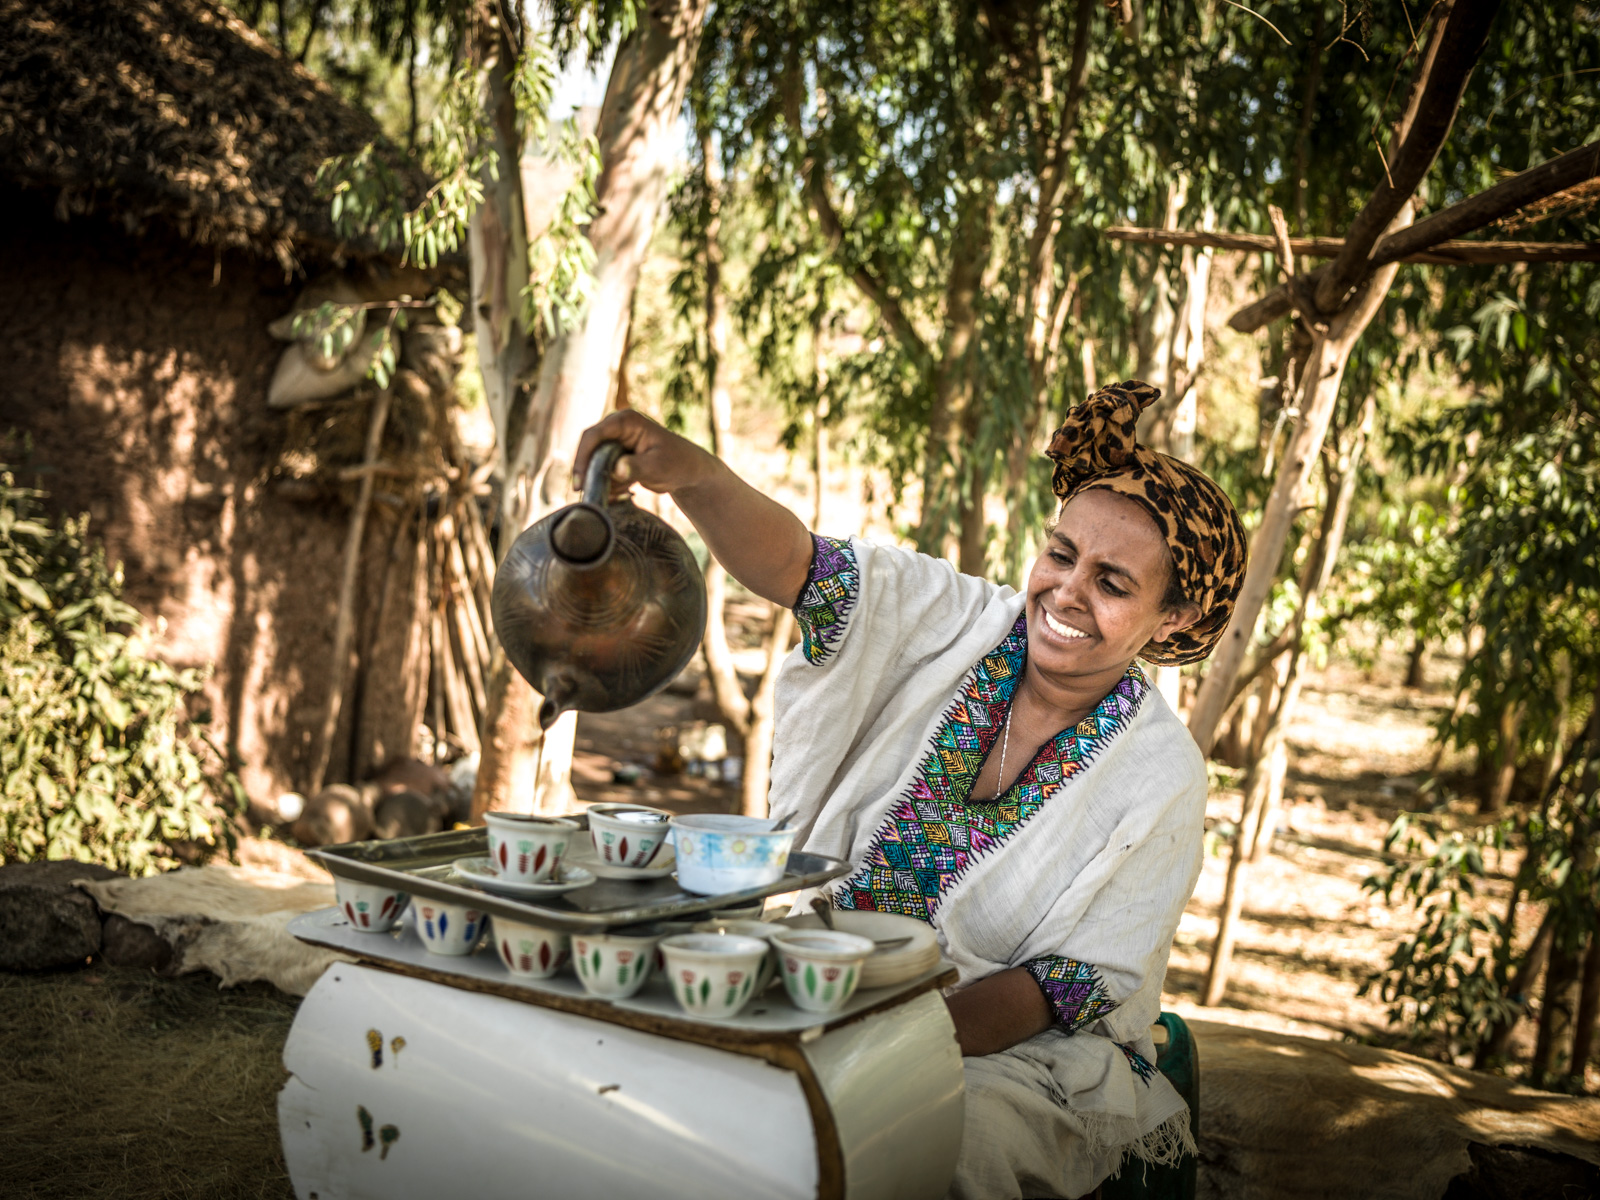 Woman shown performing coffee ceremony in Ethiopia